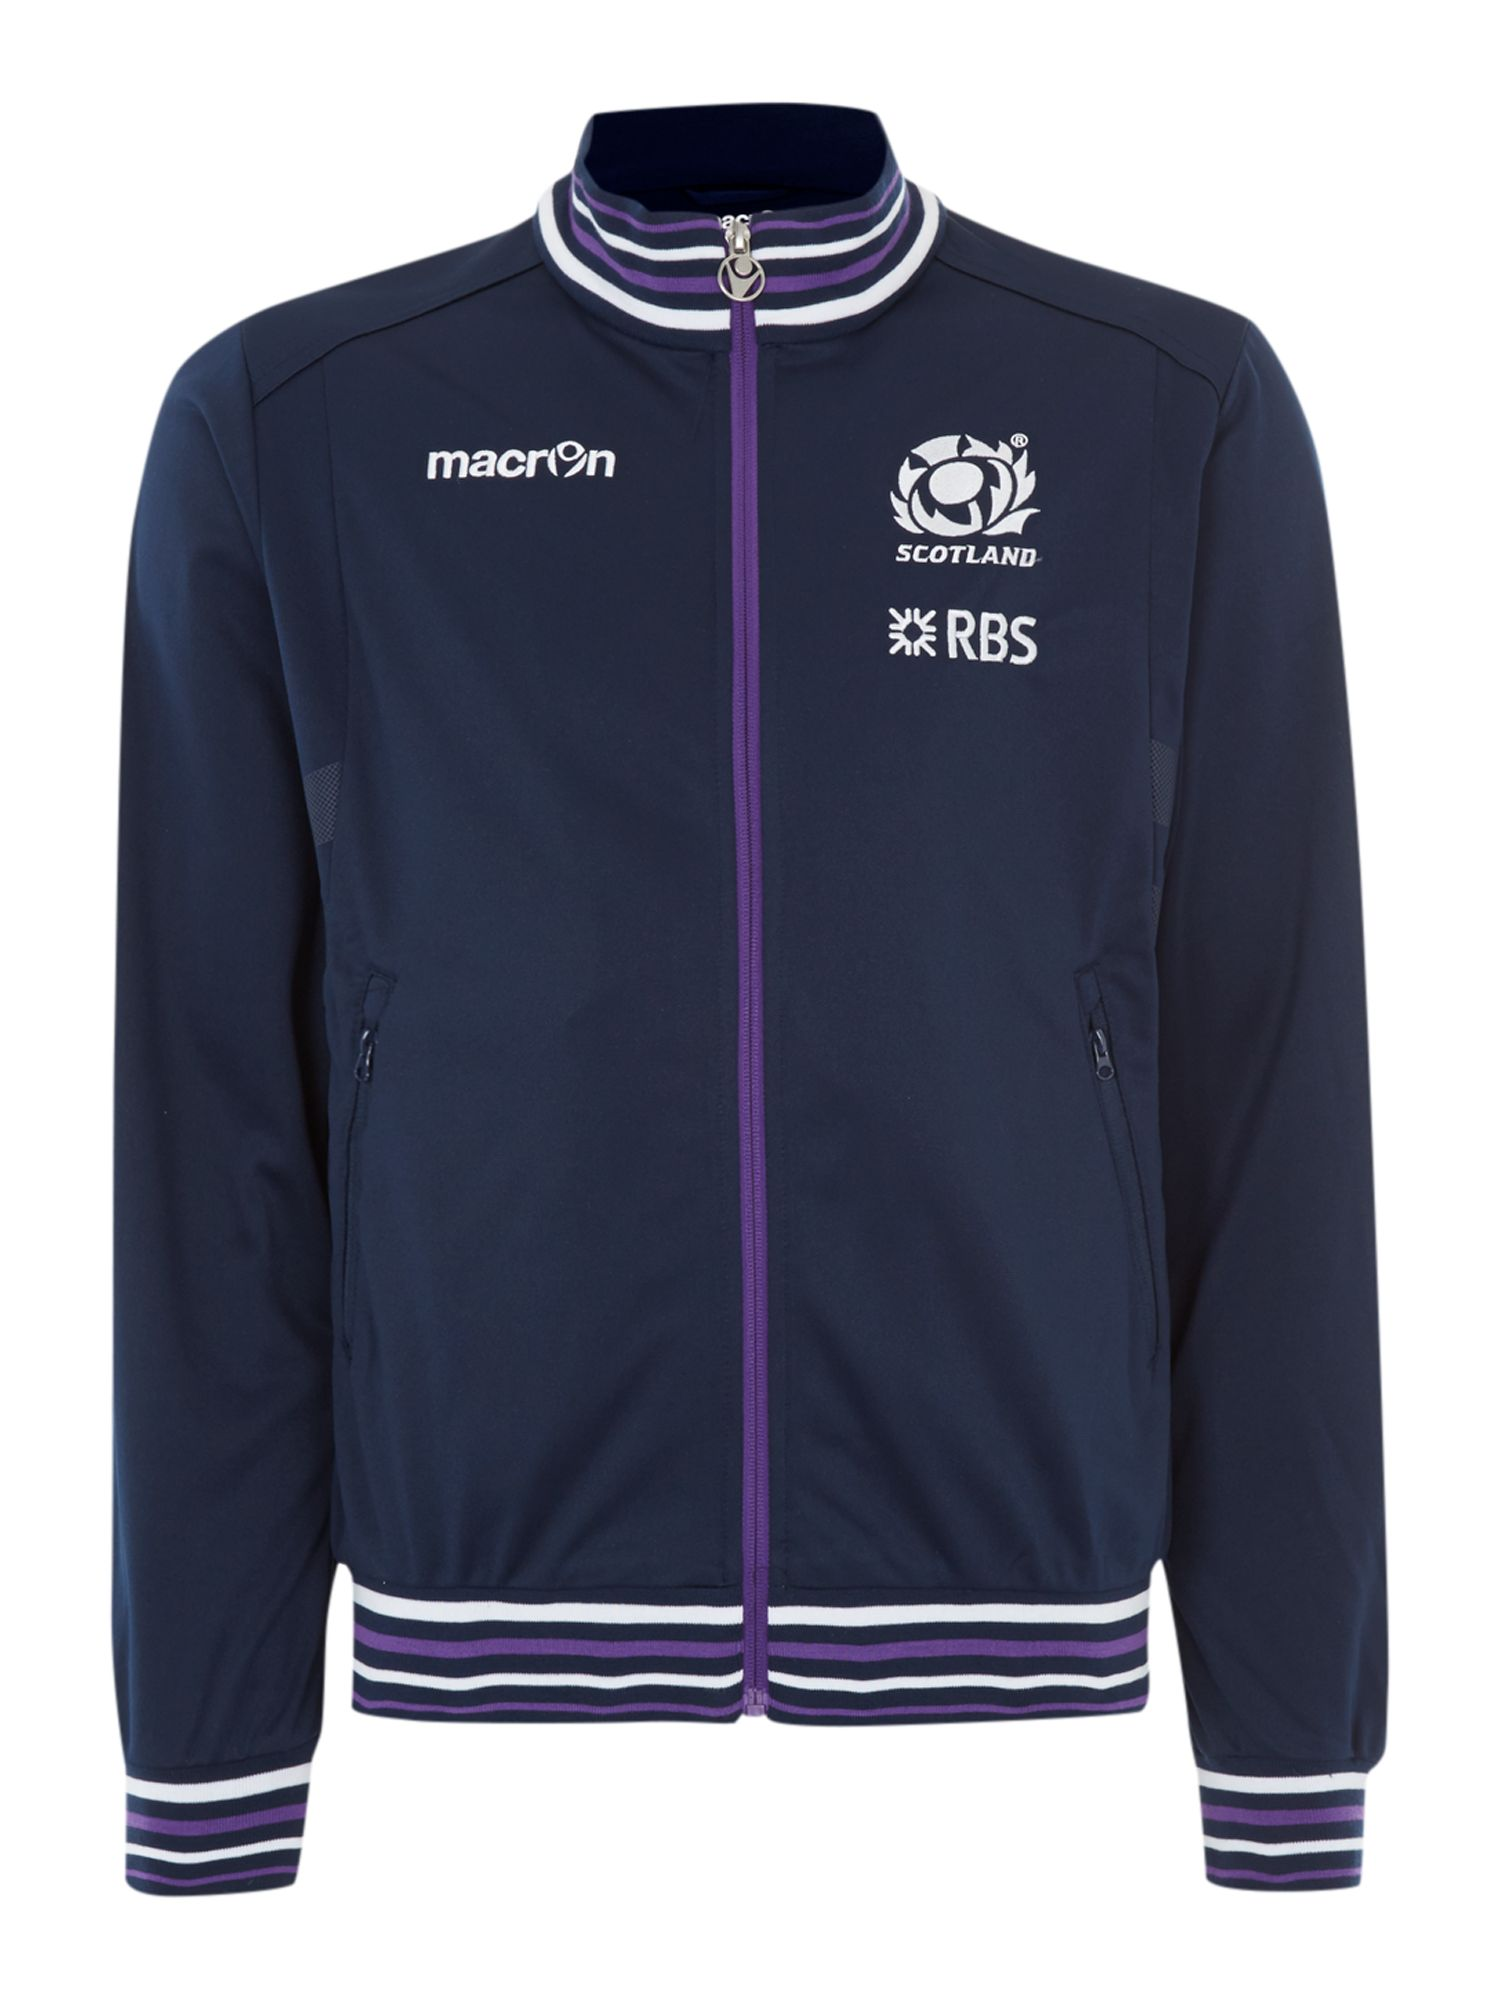 Scottish rugby full zip anthem jacket